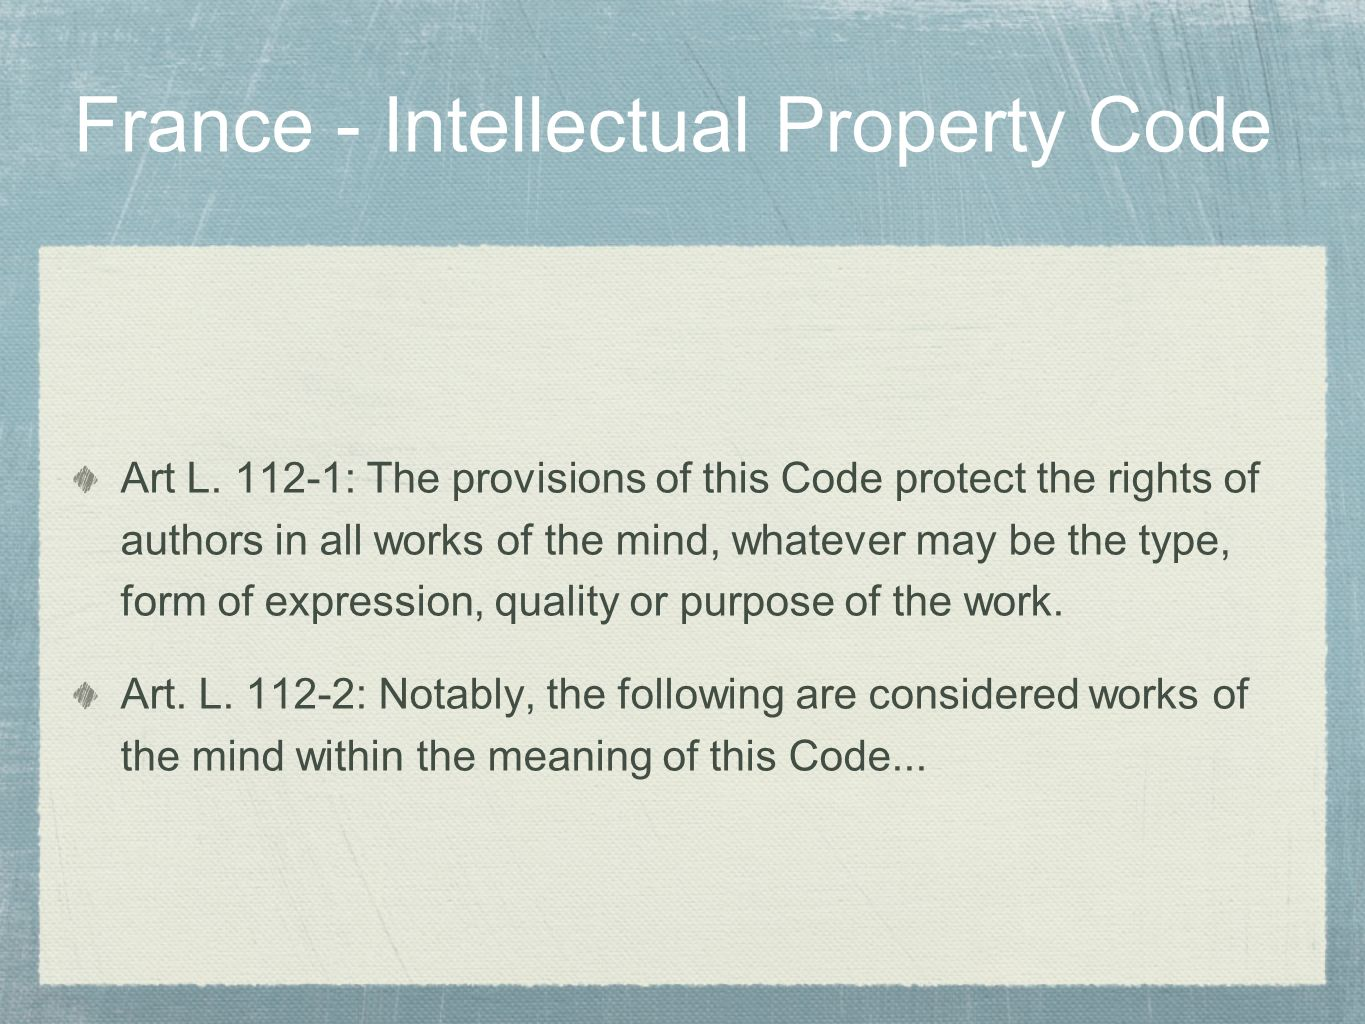 France - Intellectual Property Code